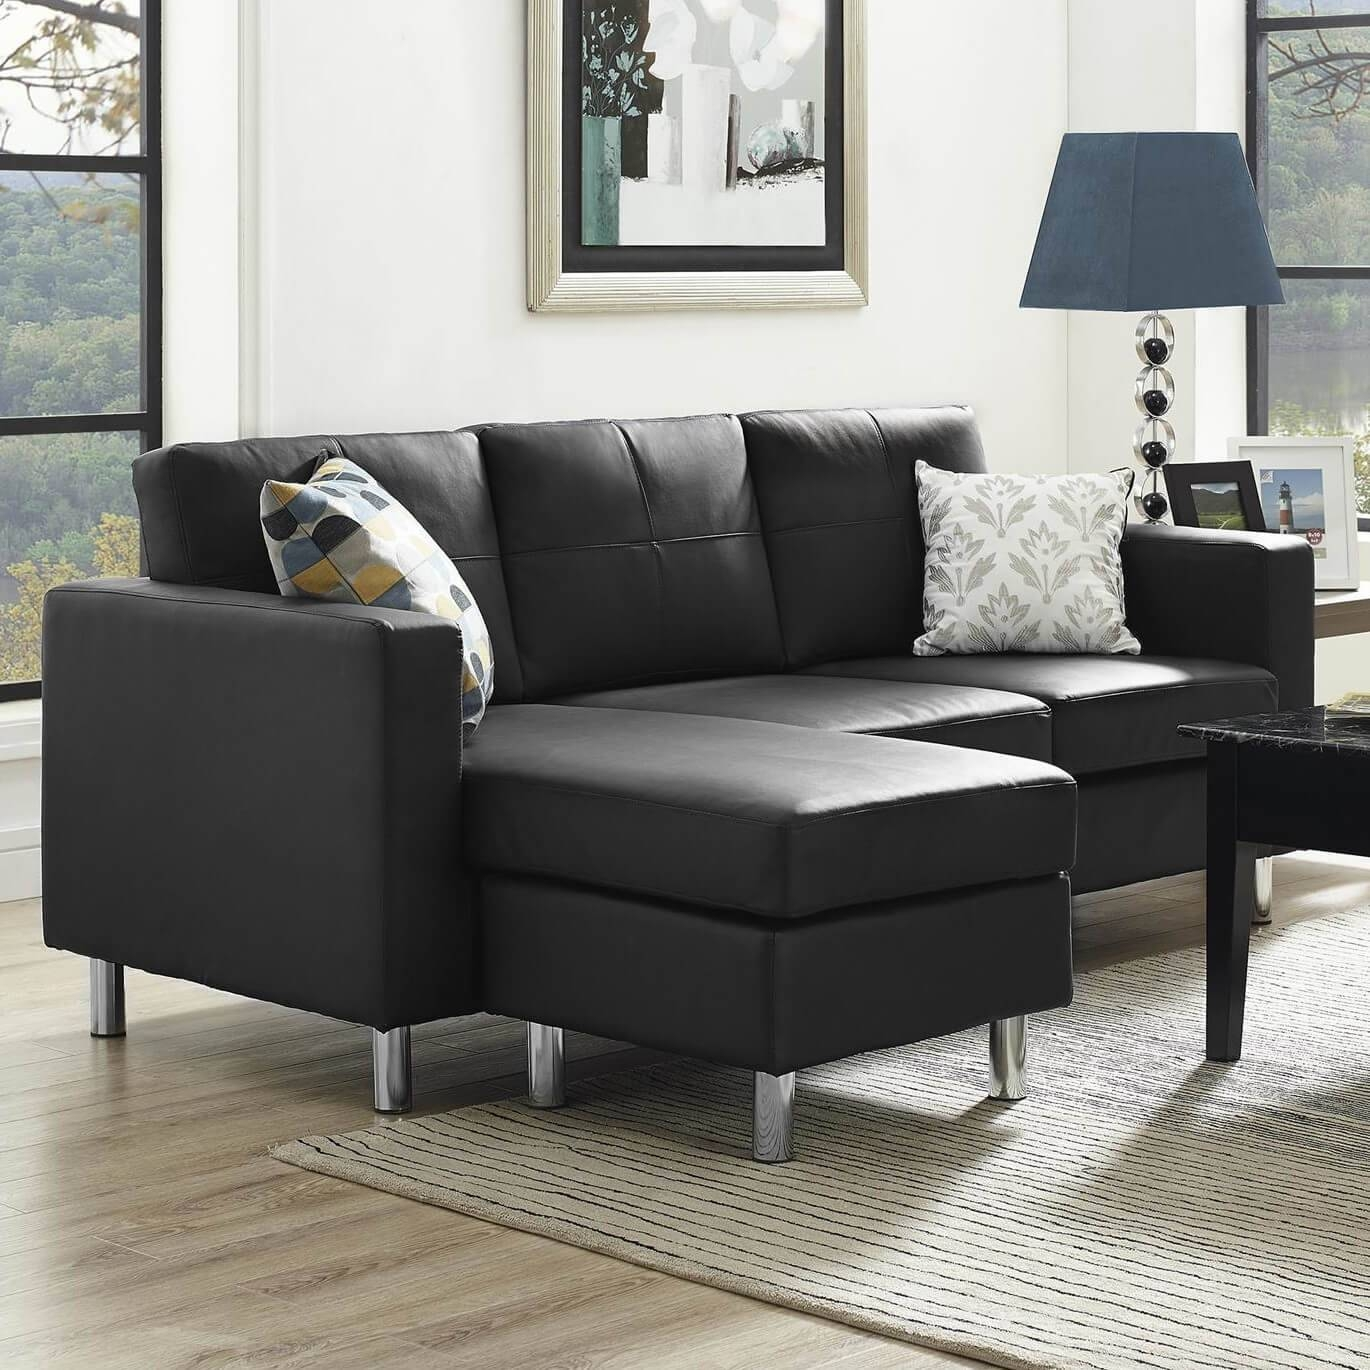 13 Sectional Sofas Under $500 (Several Styles) pertaining to Small 2 Piece Sectional Sofas (Image 1 of 30)